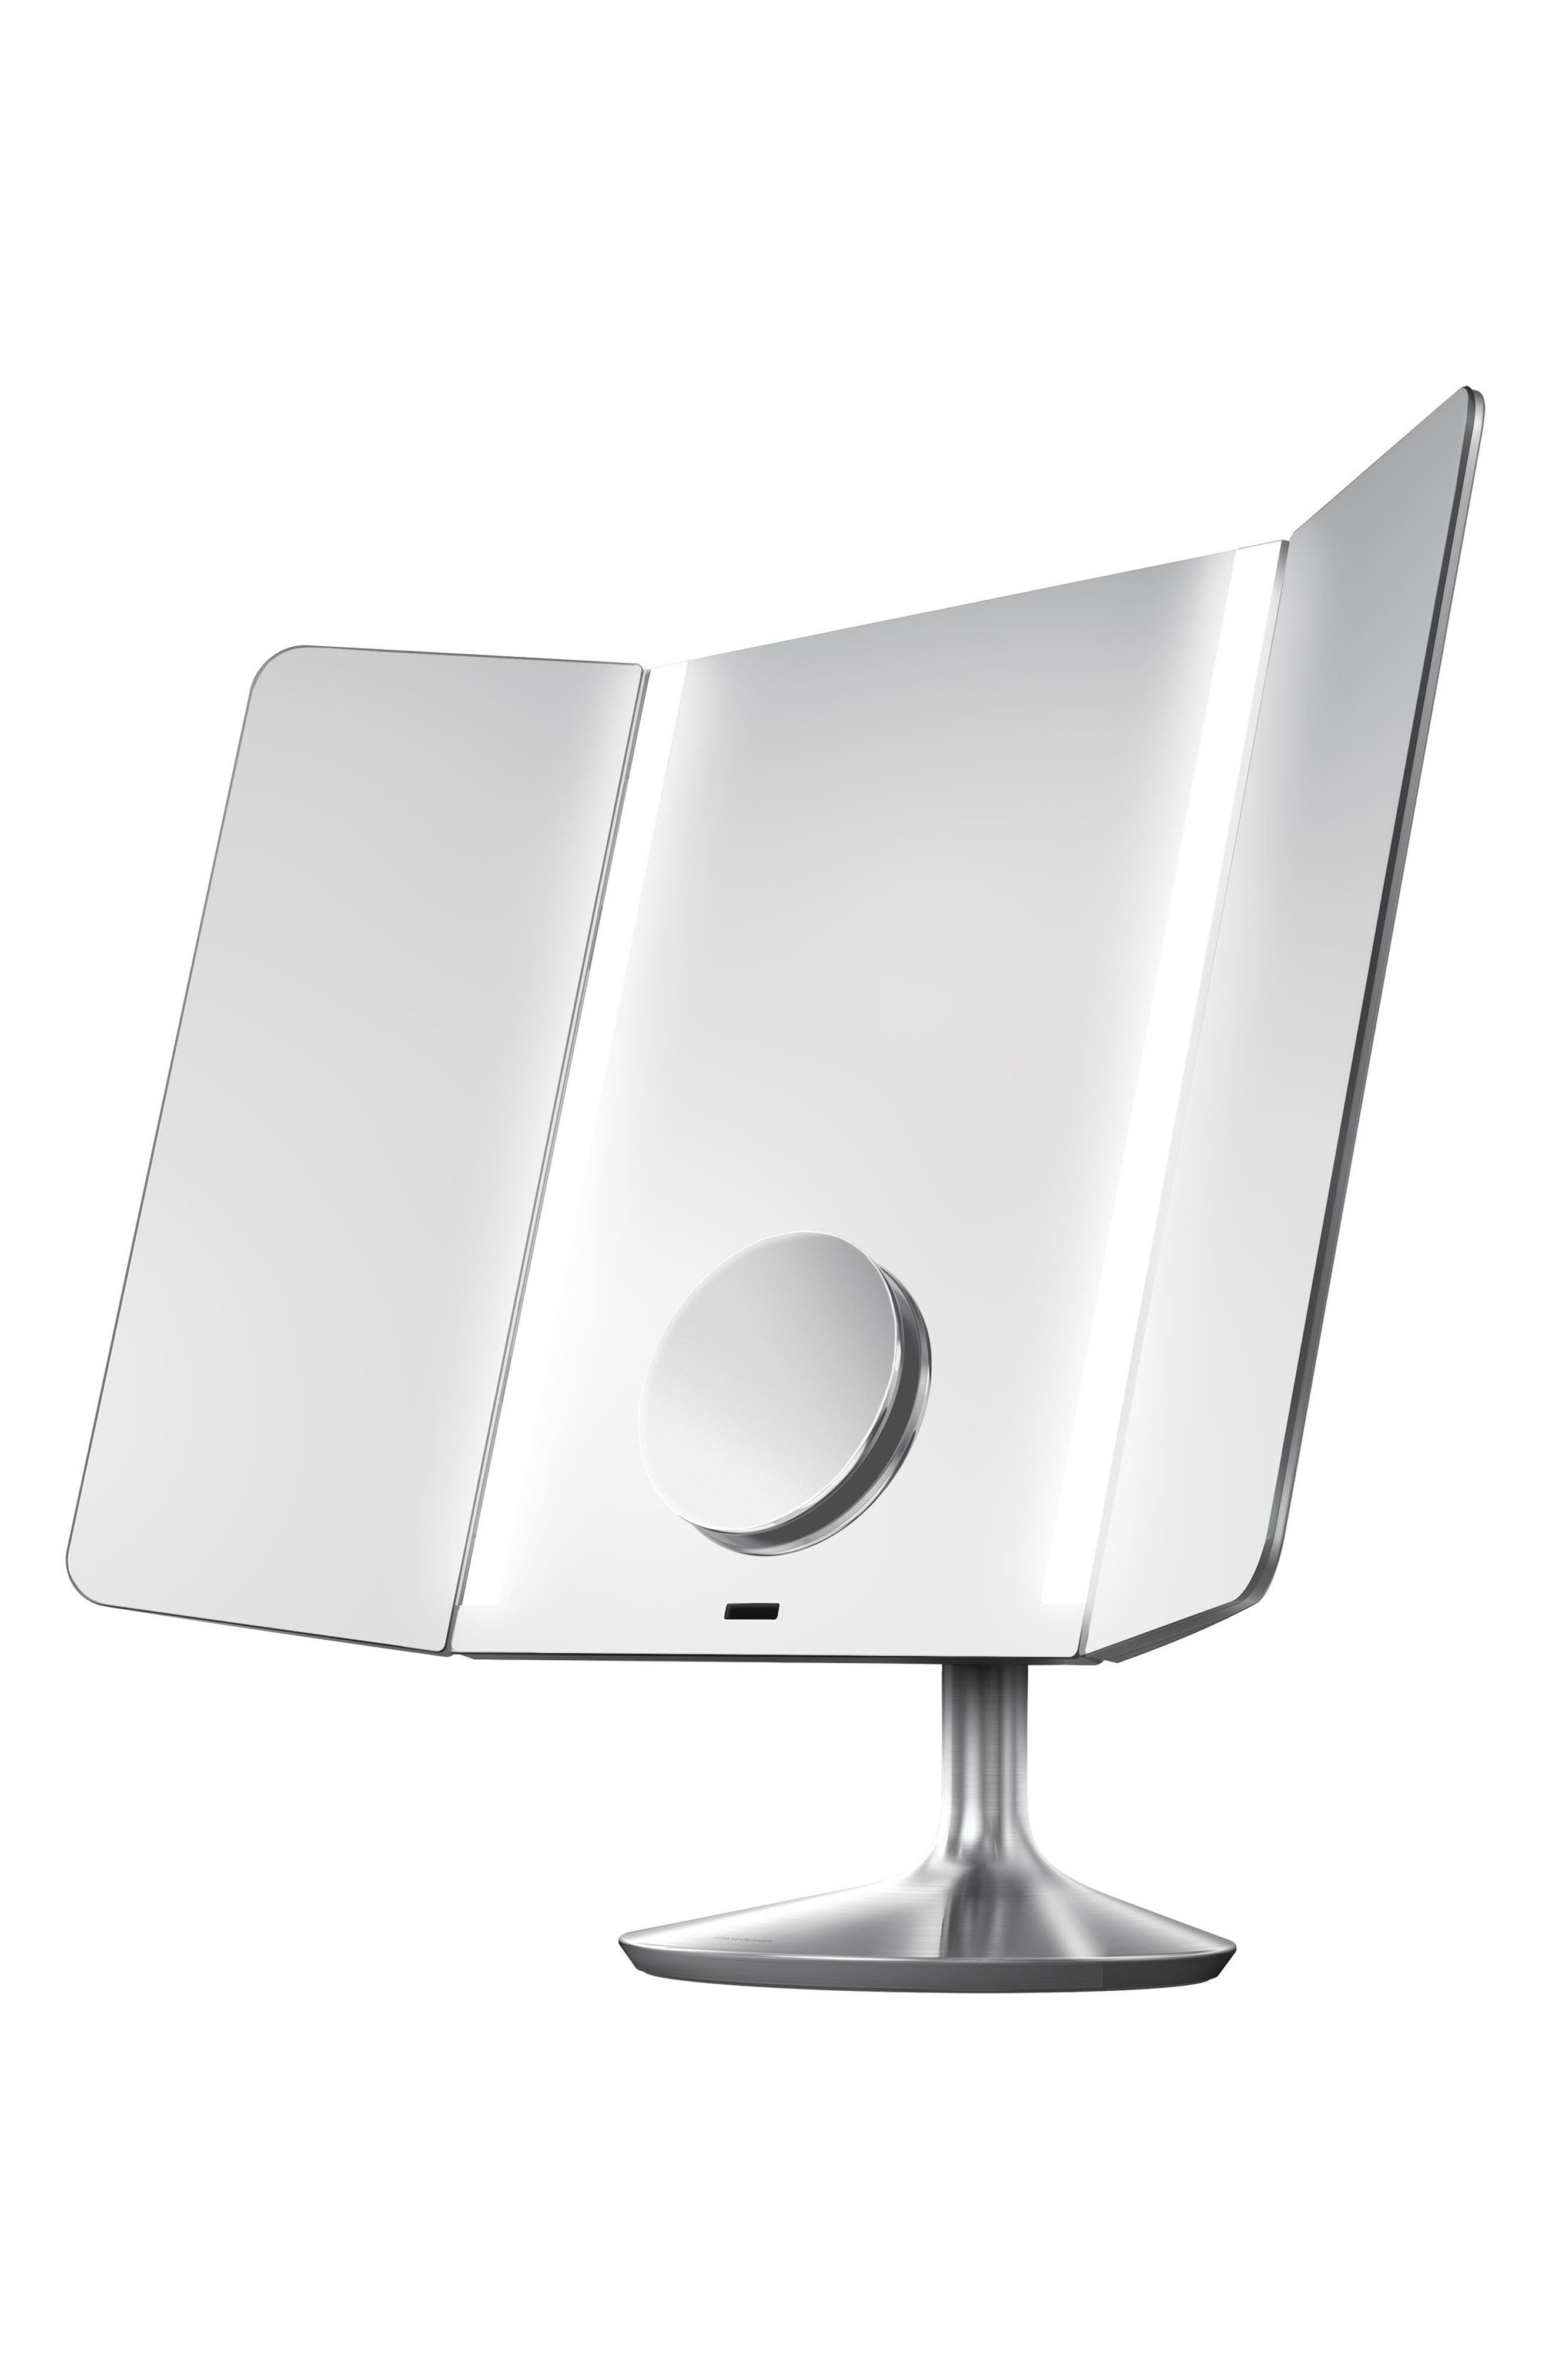 Alternate Image 1 Selected - simplehuman Sensor Mirror Pro Wide View